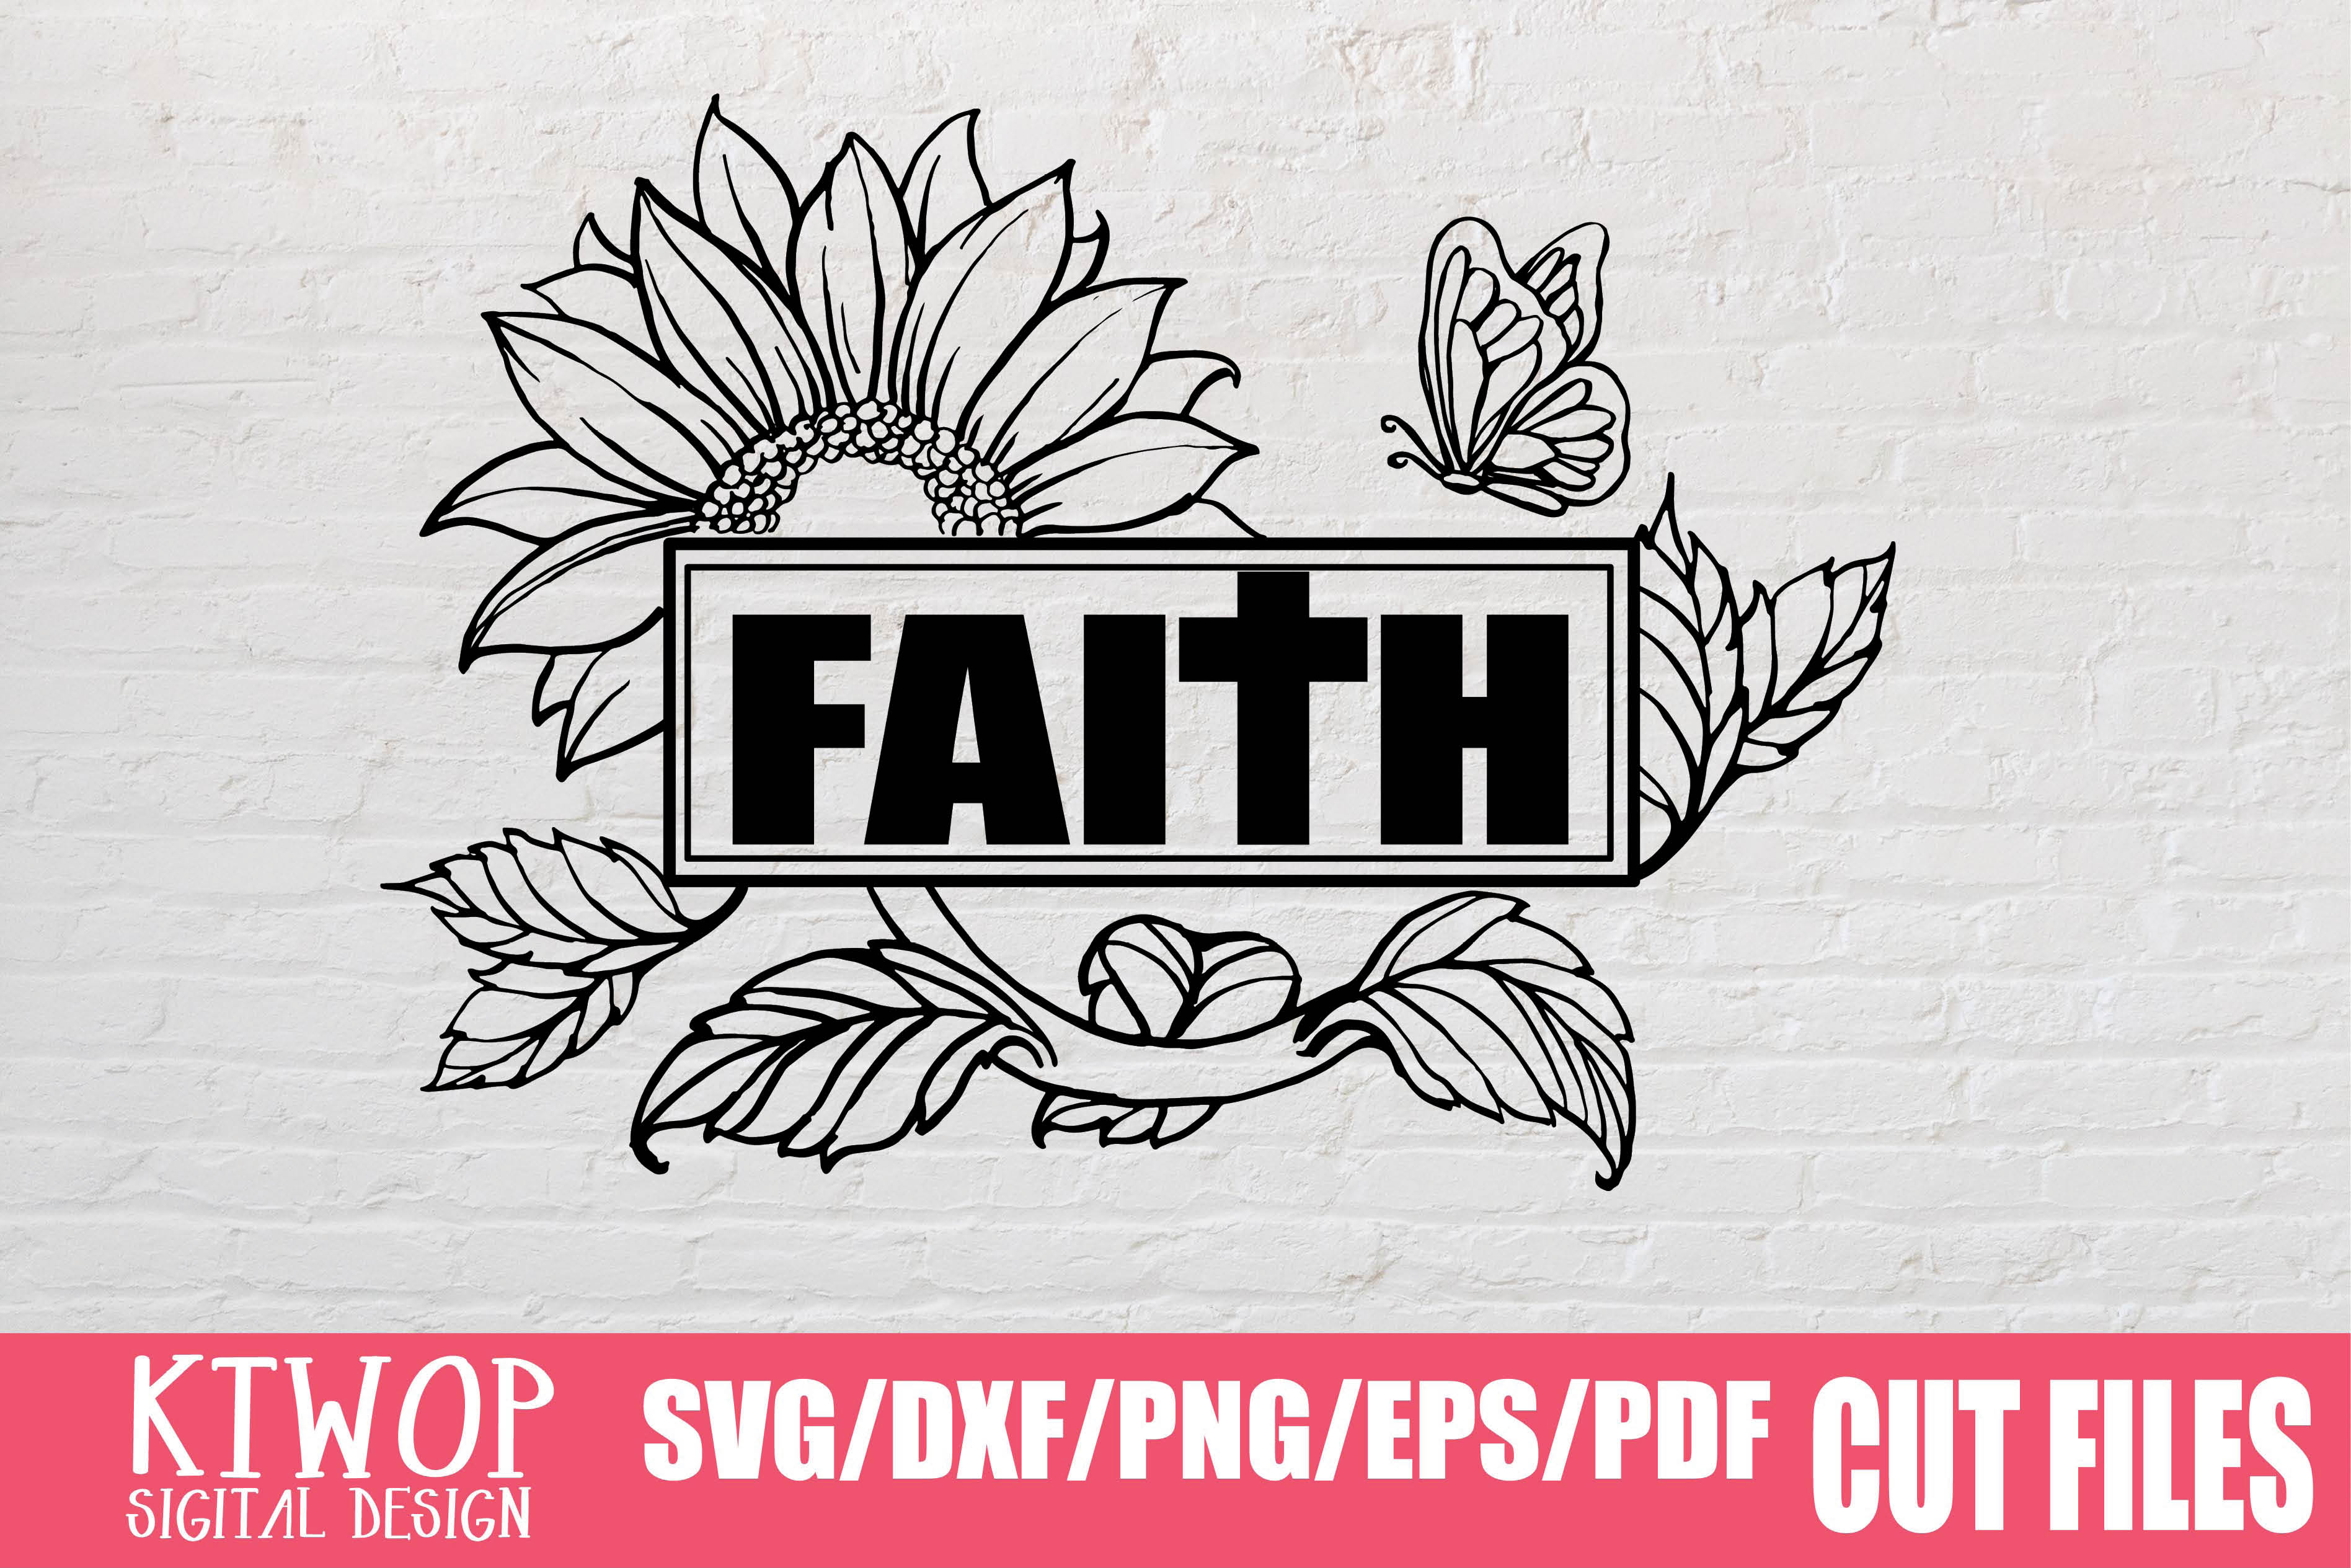 Download Free Sunflower Jesus Faith 2020 Graphic By Ktwop Creative Fabrica for Cricut Explore, Silhouette and other cutting machines.